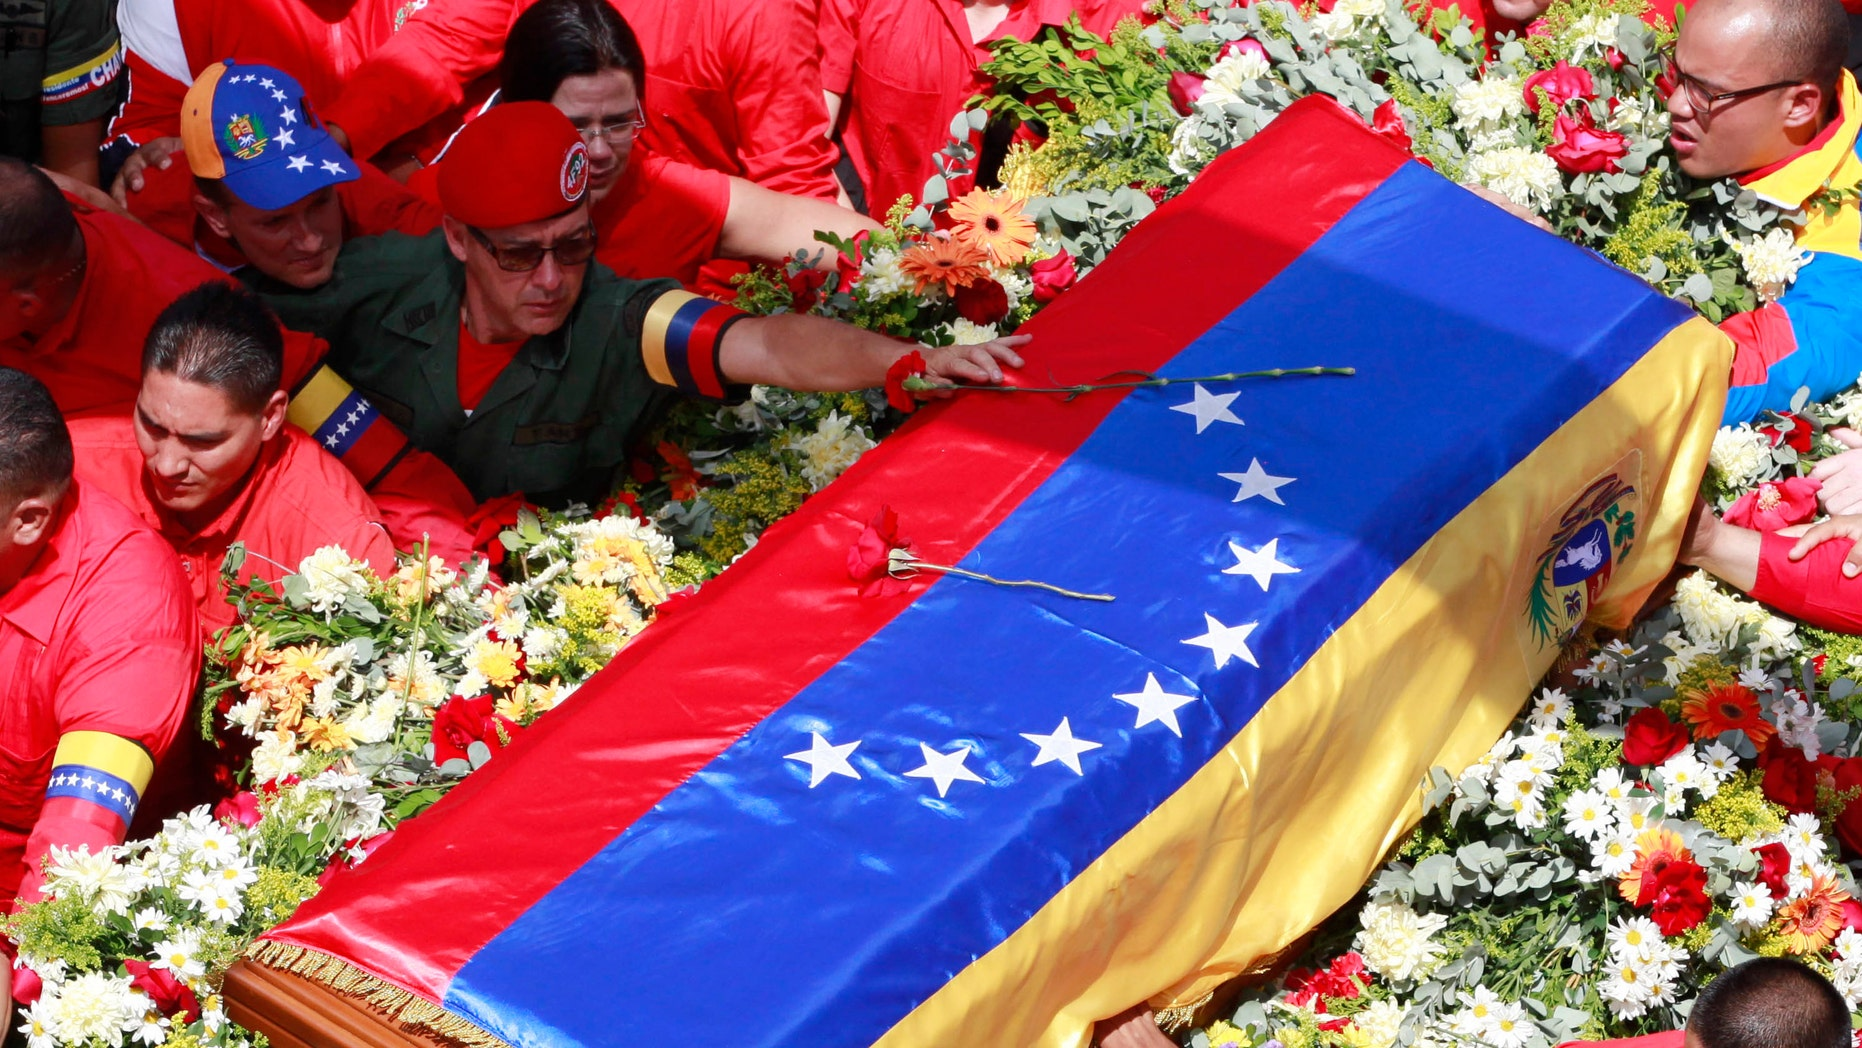 A member of the presidential guard, top, places a flower on the coffin containing the body of late President Hugo Chavez.